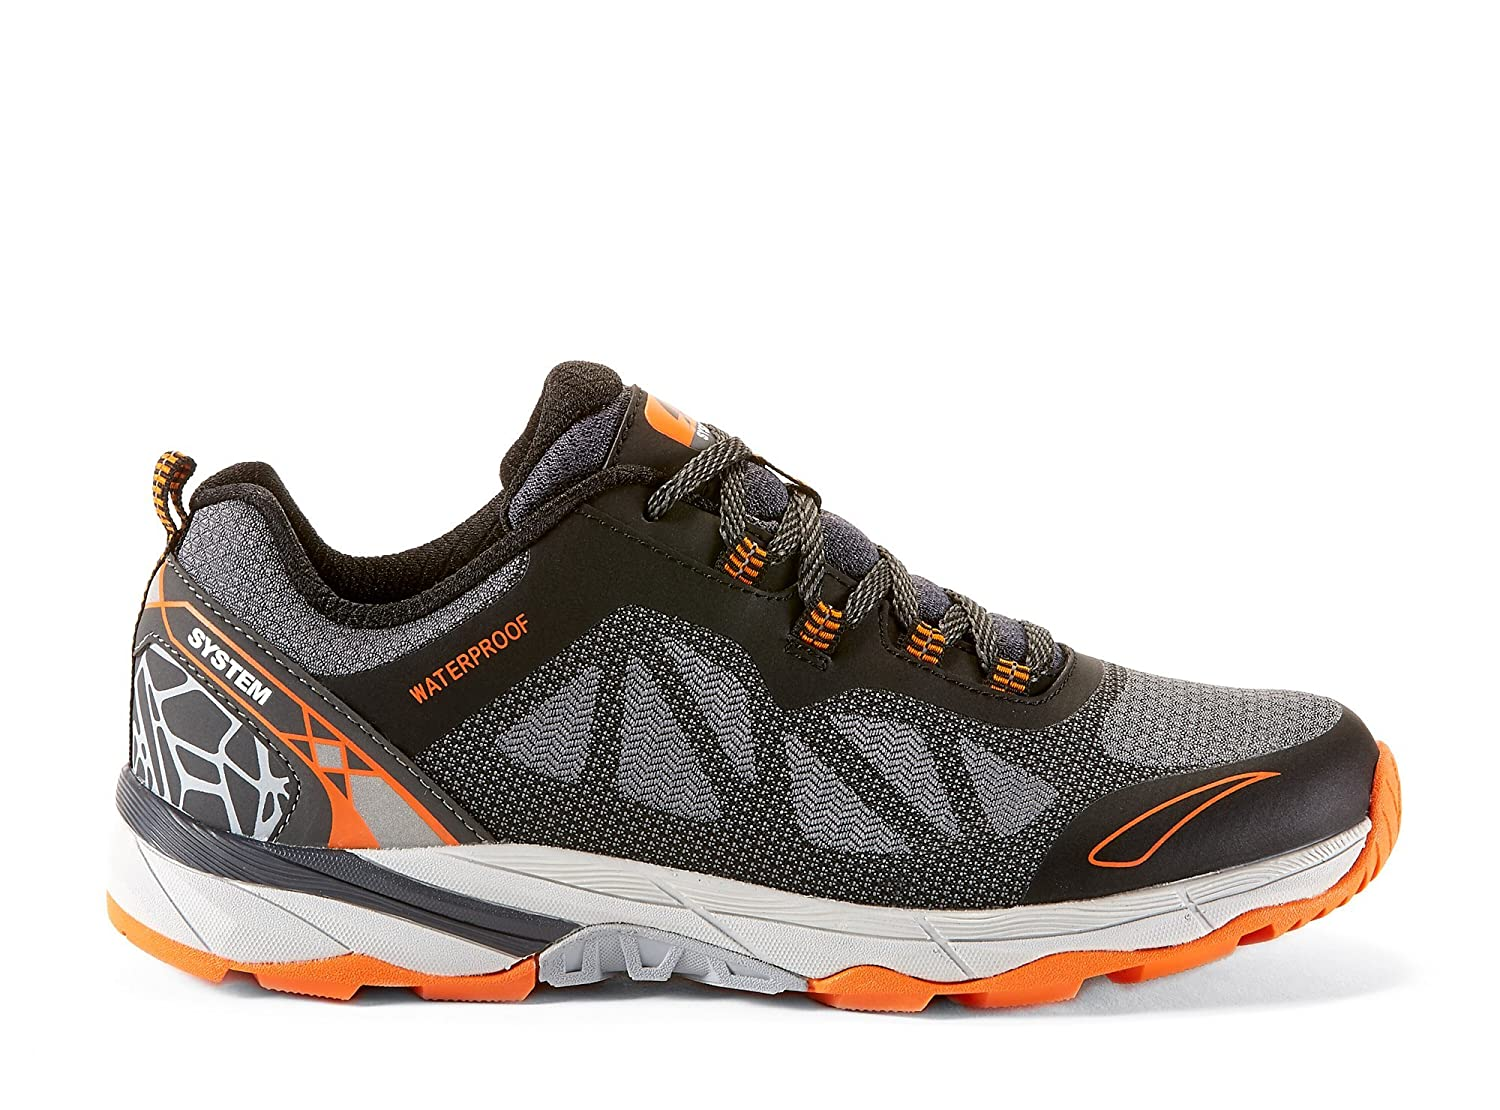 Canyon Ridge Mens Hiking & Trekking Waterproof Shoes - Casual & Comfortable - Lightweight and Breathable Knitted Fabric Upper & Mesh Fabric - Perfect for Spring Summer Fall Winter CANYON RIDGE-P